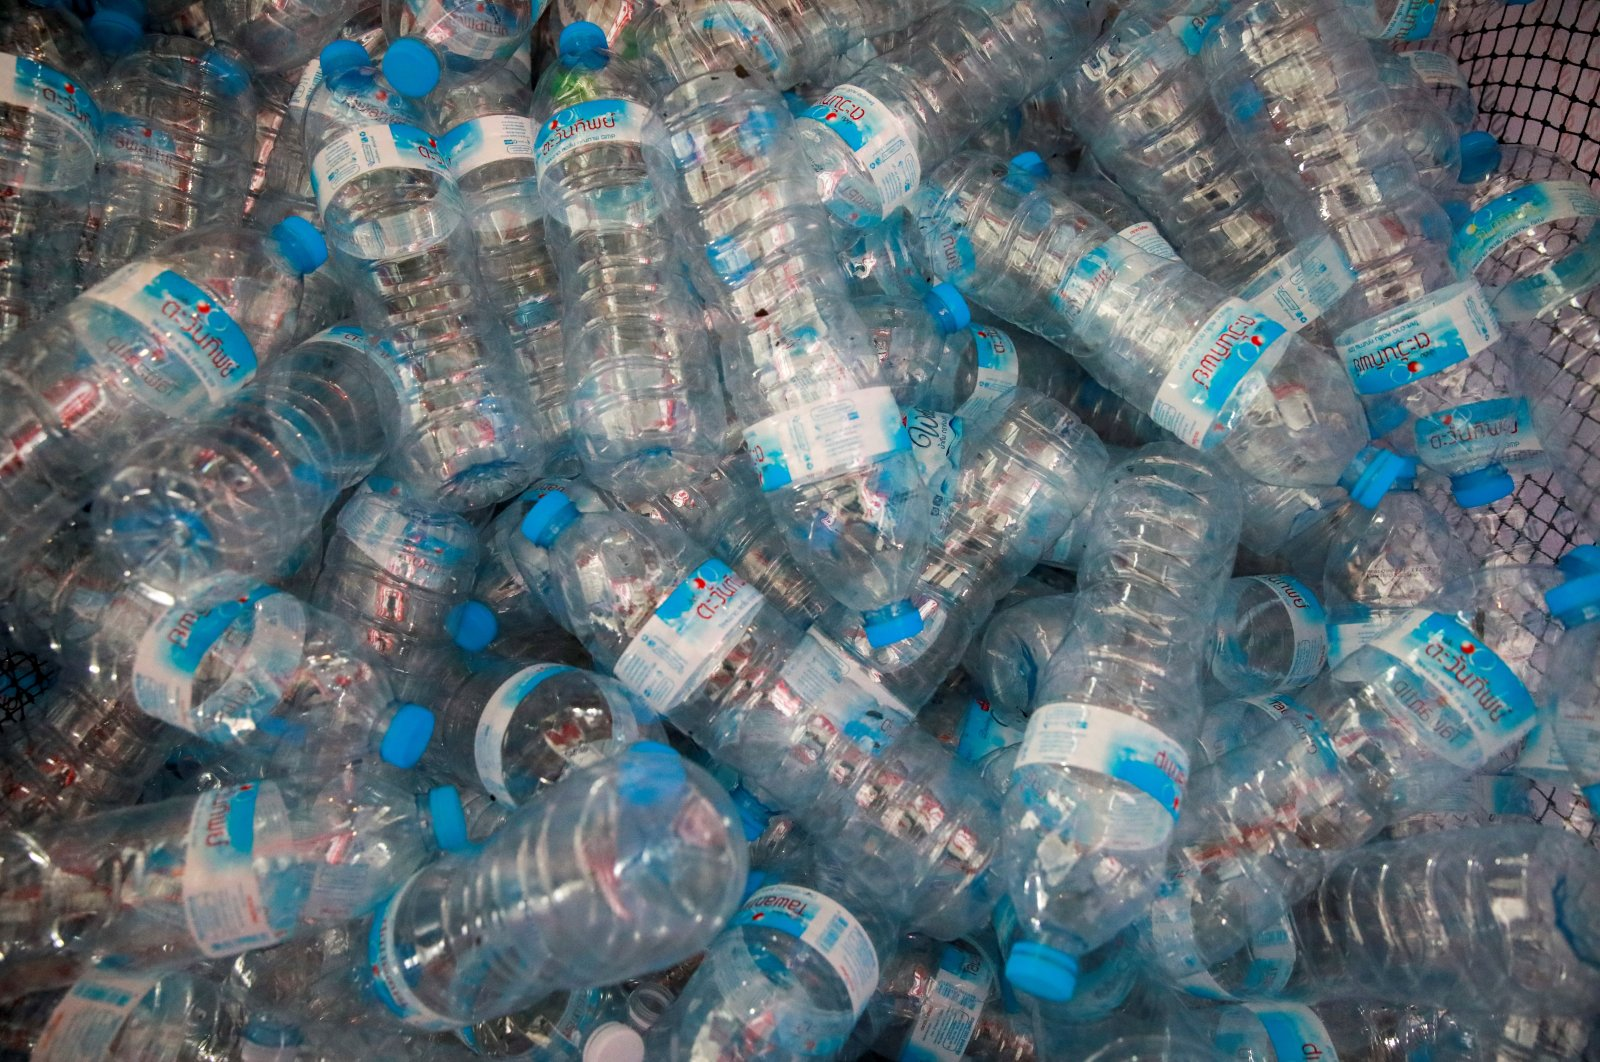 Plastic bottles are seen at a collecting point in Bangkok, Thailand, Aug. 30, 2021. (Reuters Photo)